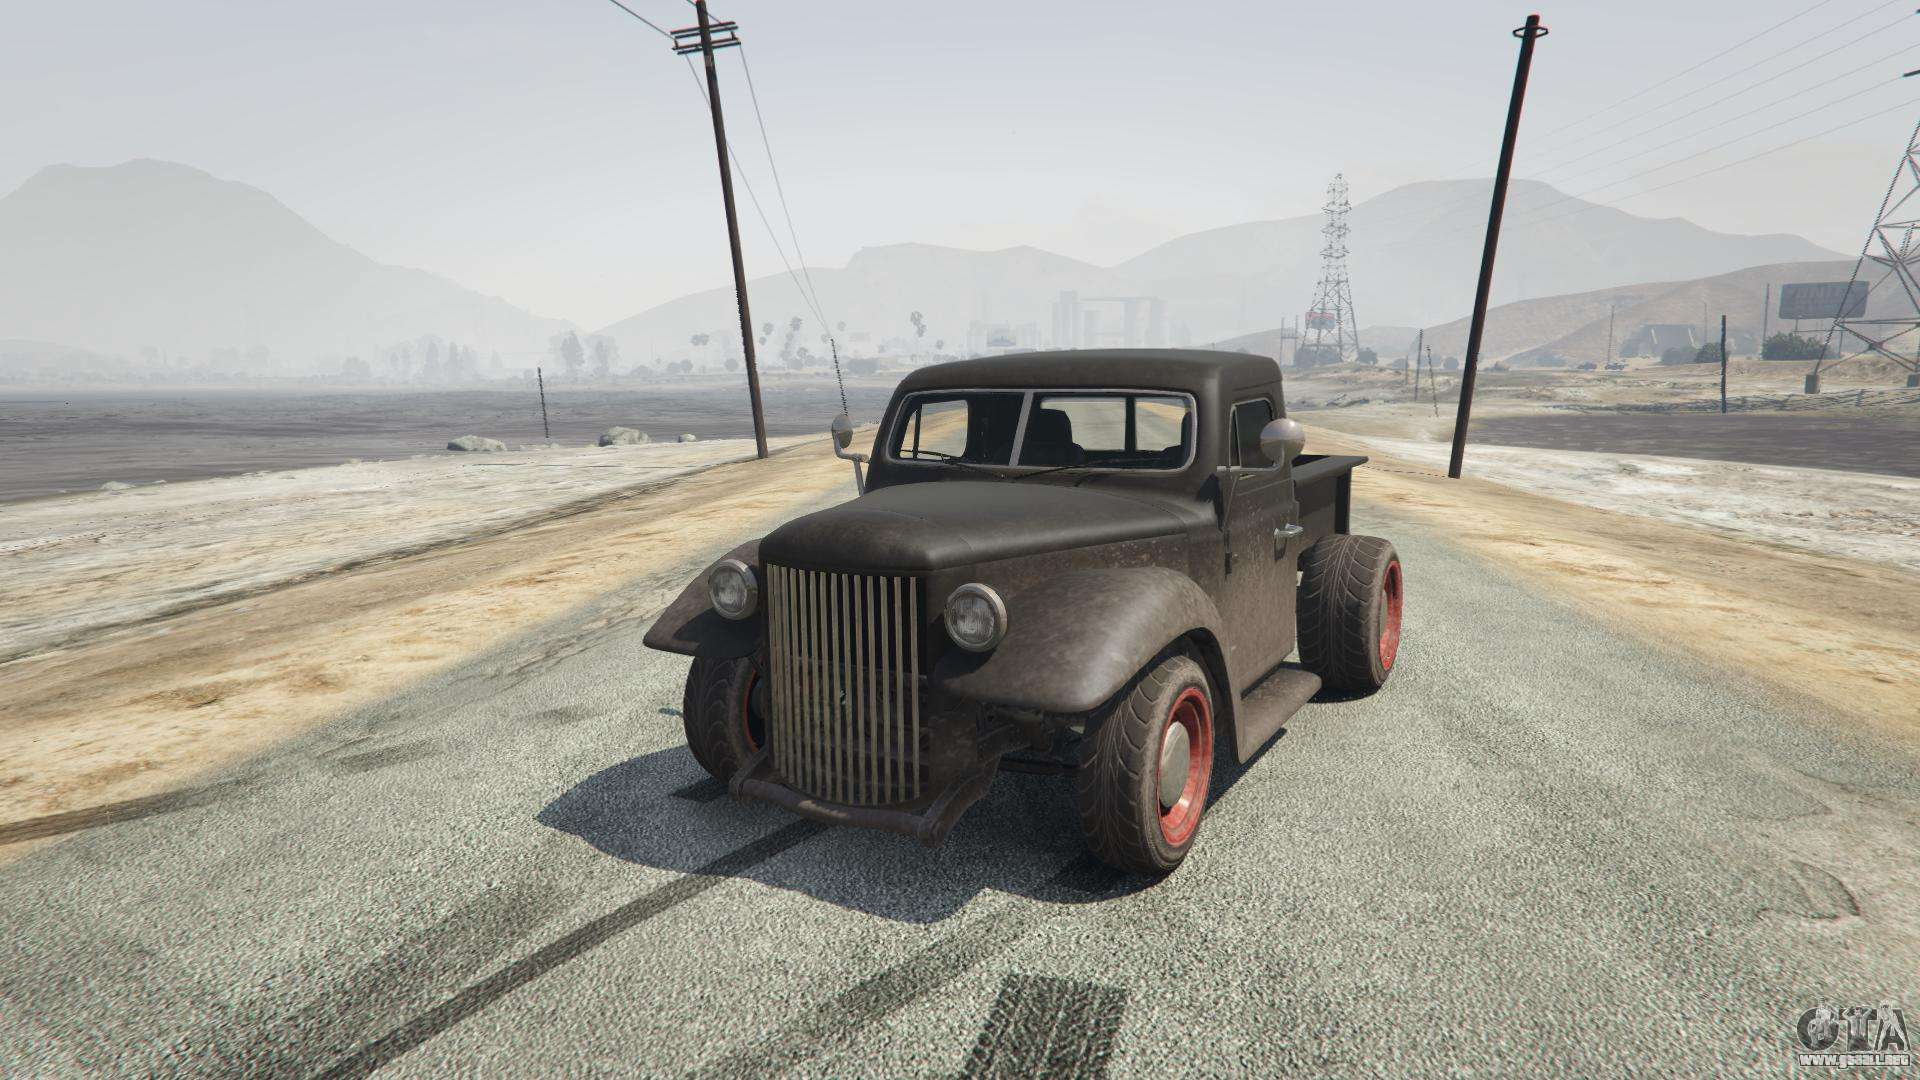 Rat-Truck de GTA 5 - vista frontal